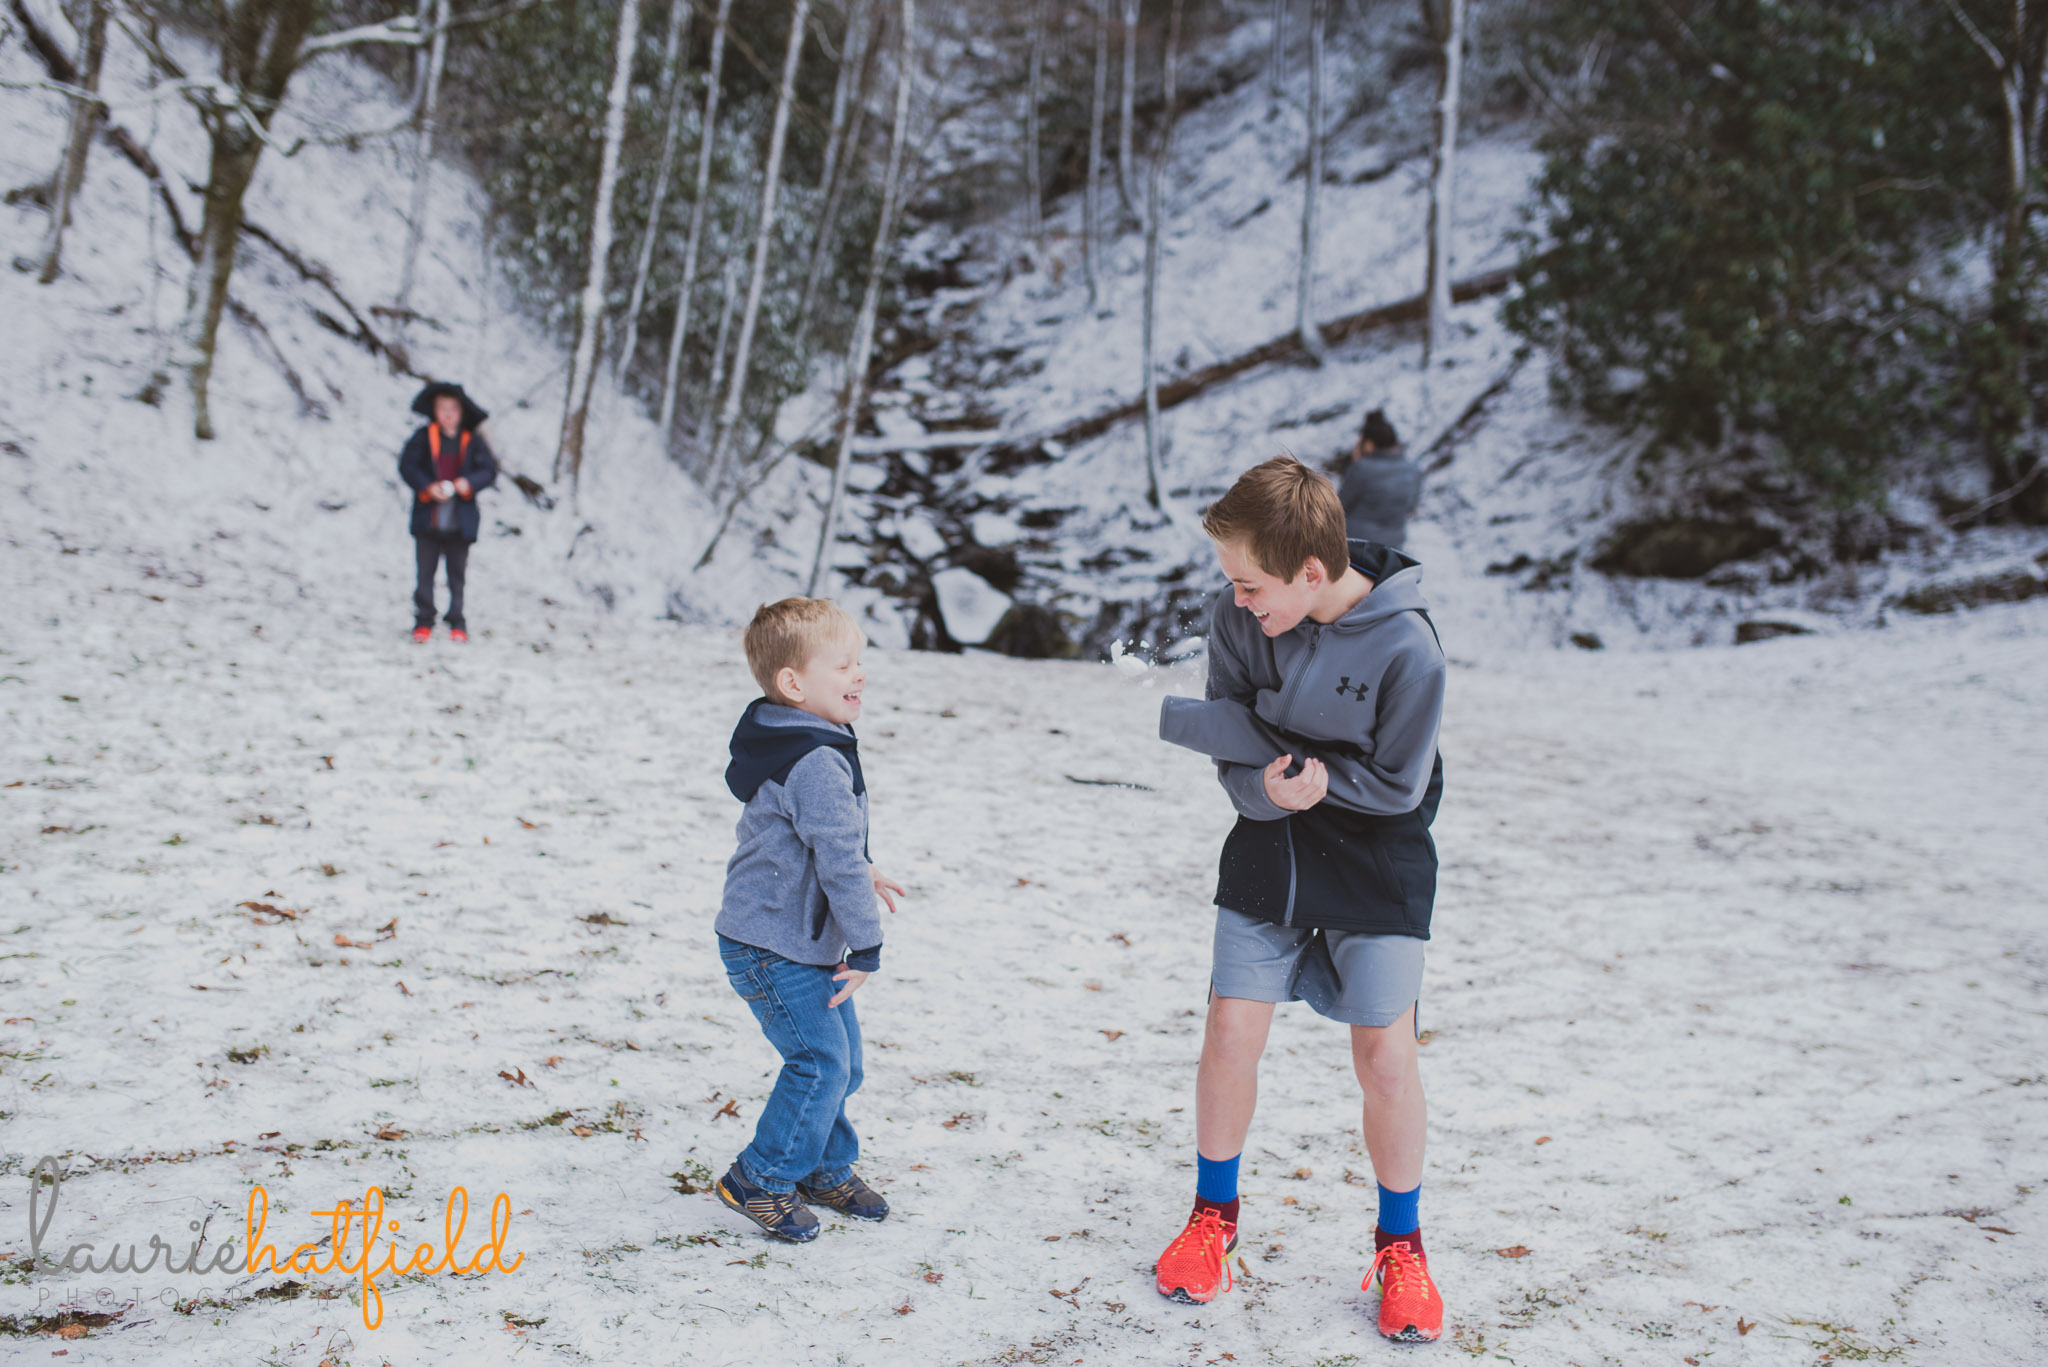 brother throwing snowballs | Mobile AL family photographer